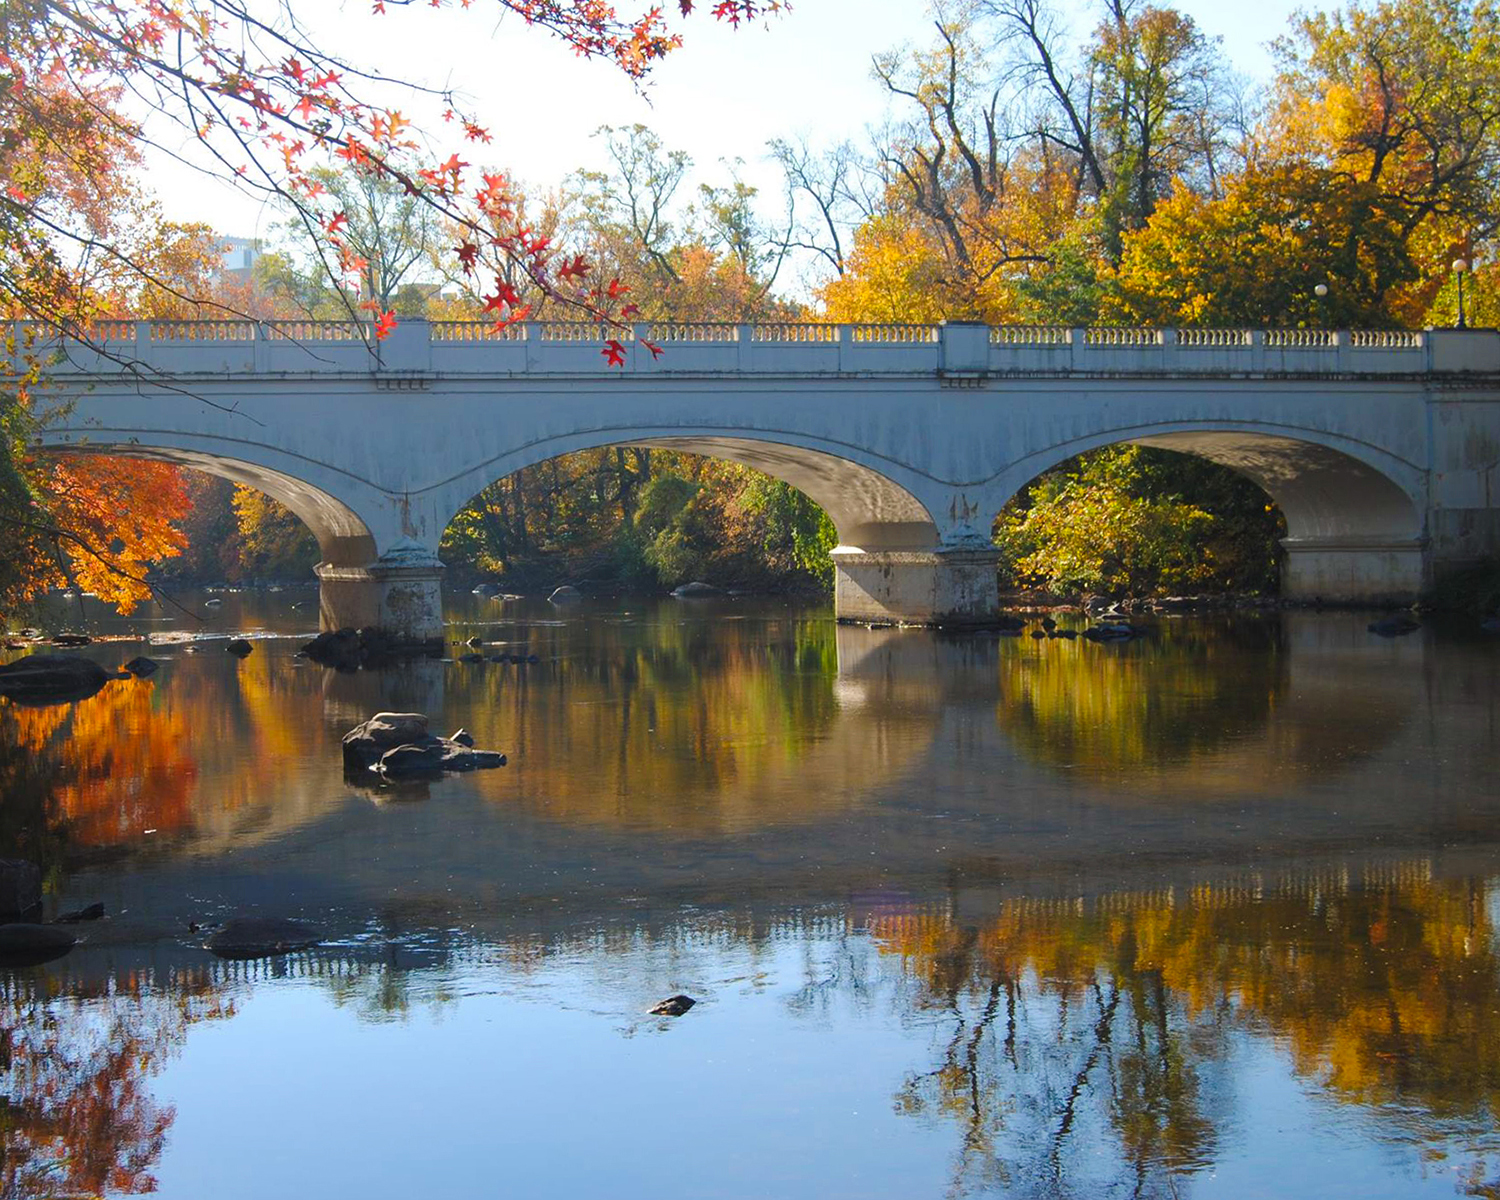 Pam Cottrell - Reflections - Brandywine River - Wilmington, Delaware